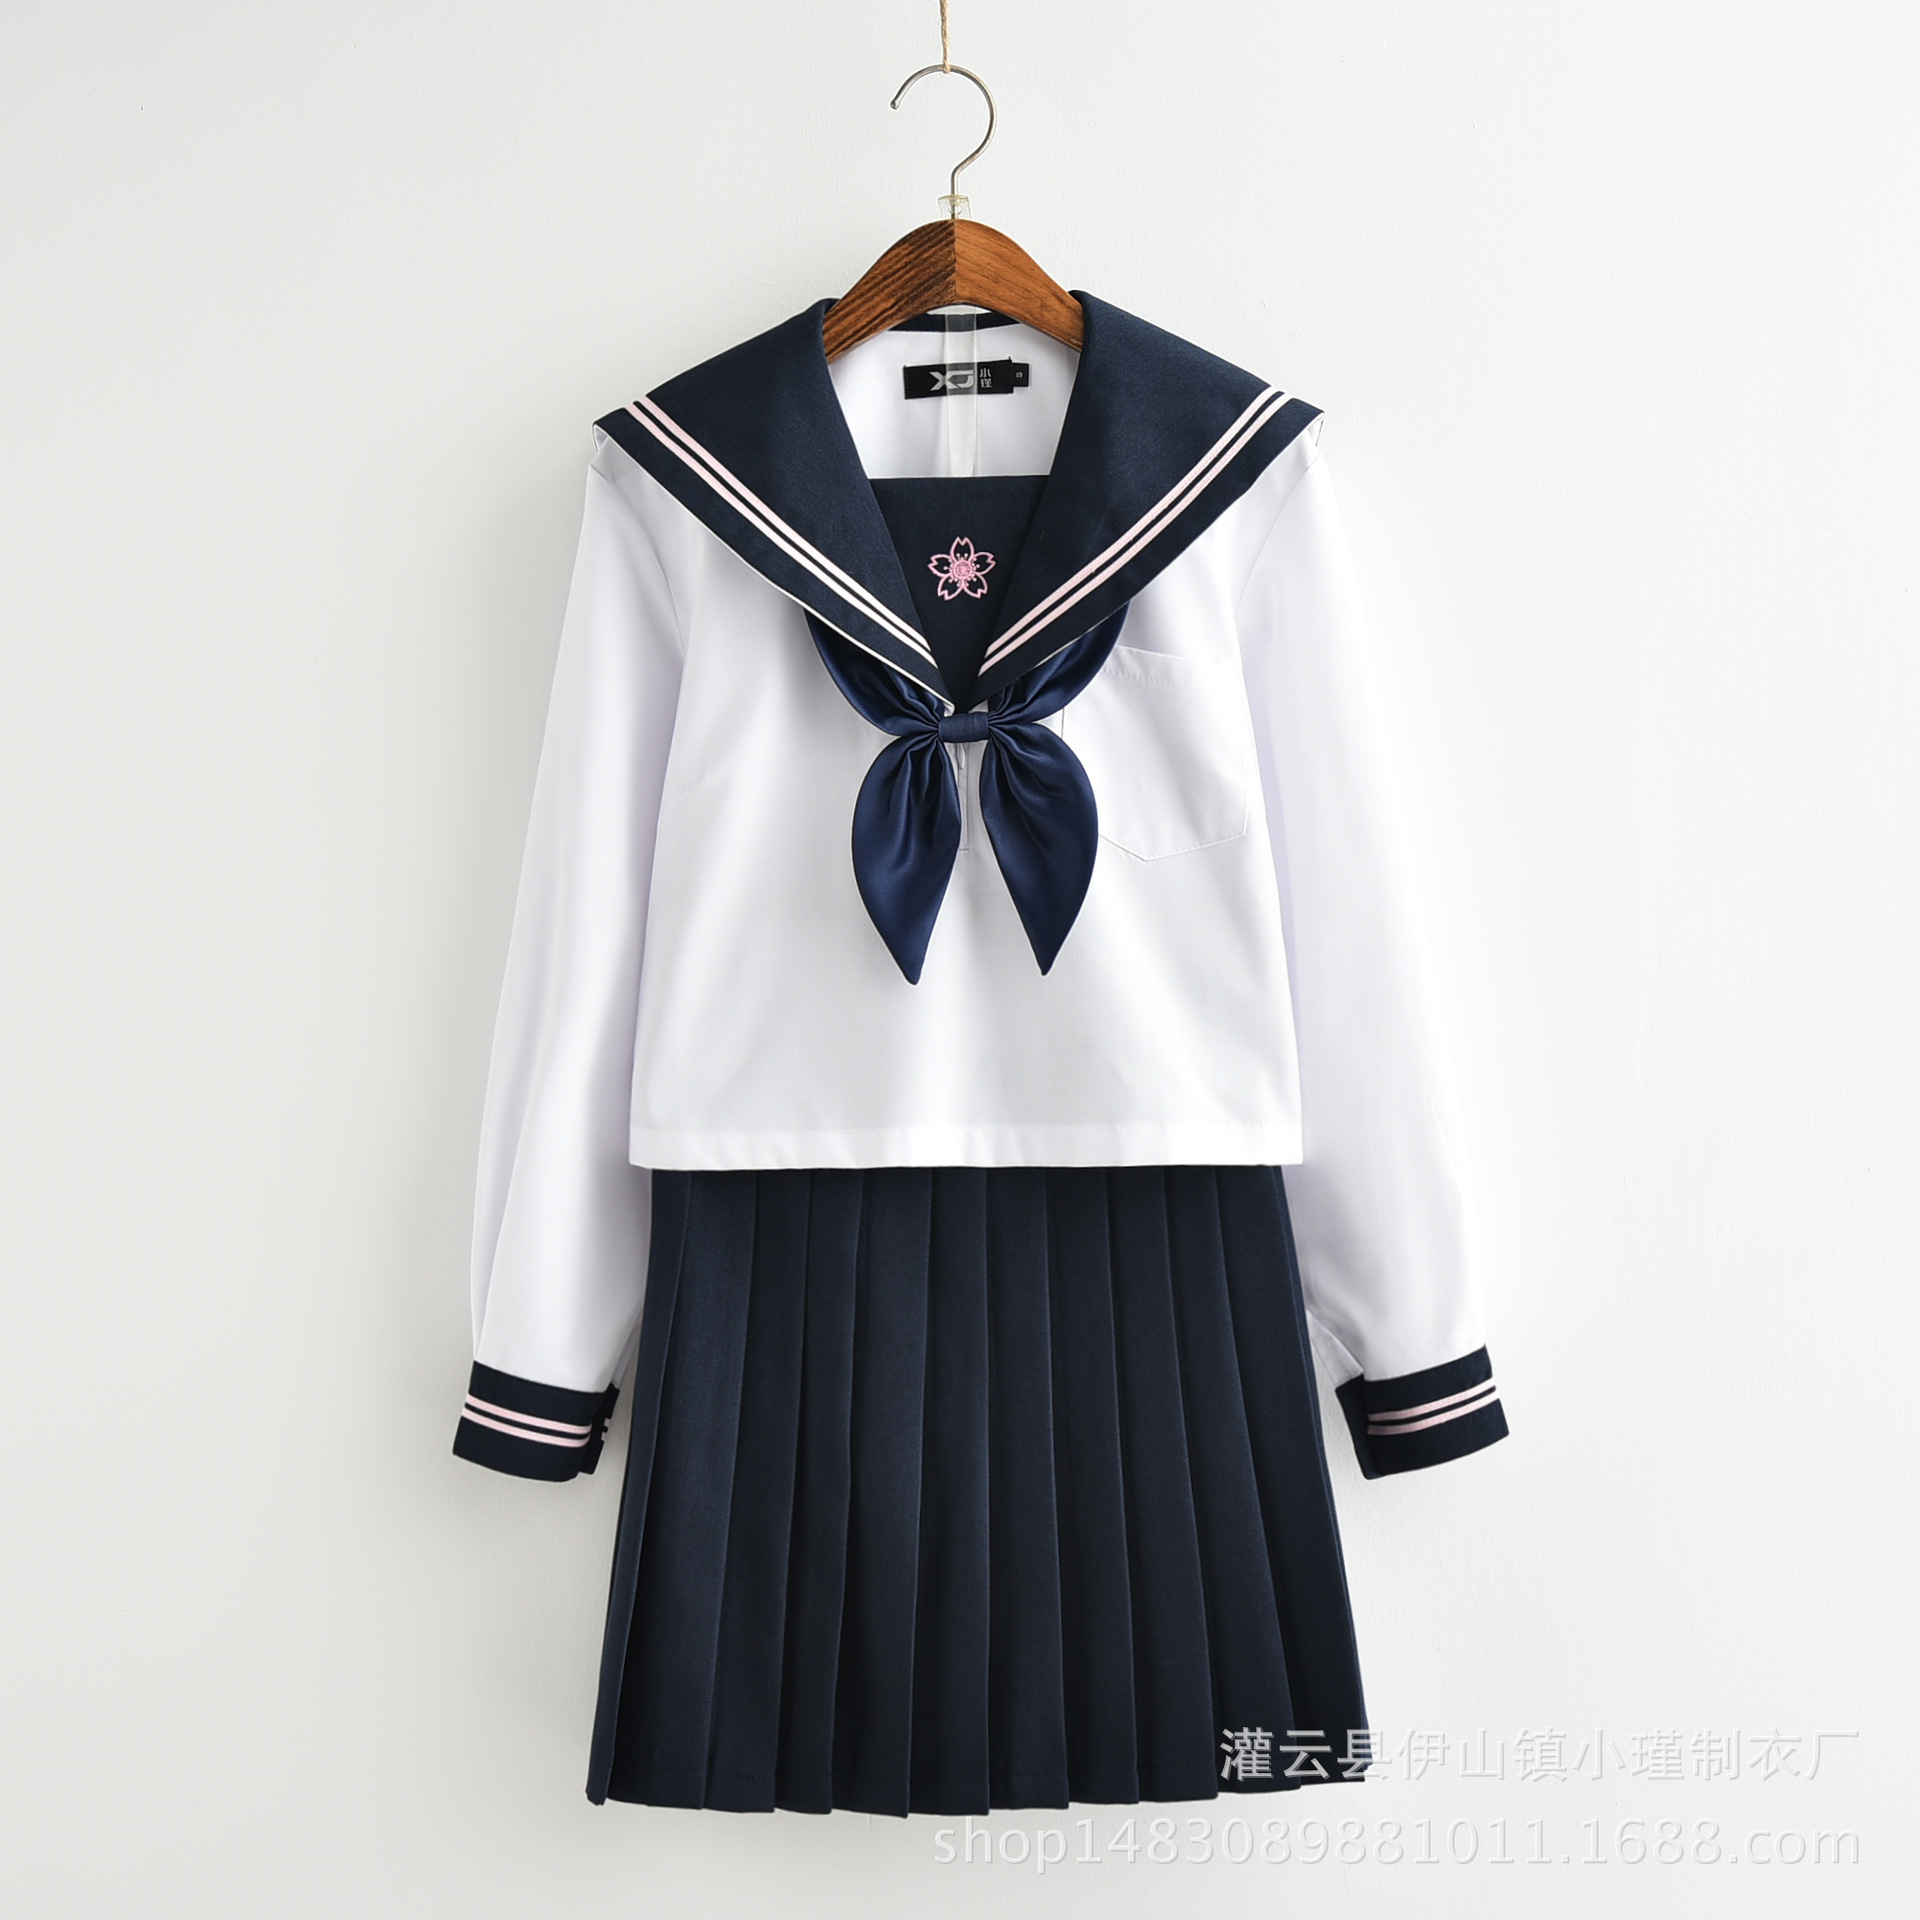 Sailor Suit School Uniform Long Sleeve Sets Jk School Uniforms For Girls White Shirt And Dark Blue Skirt Suits Student Cosplay